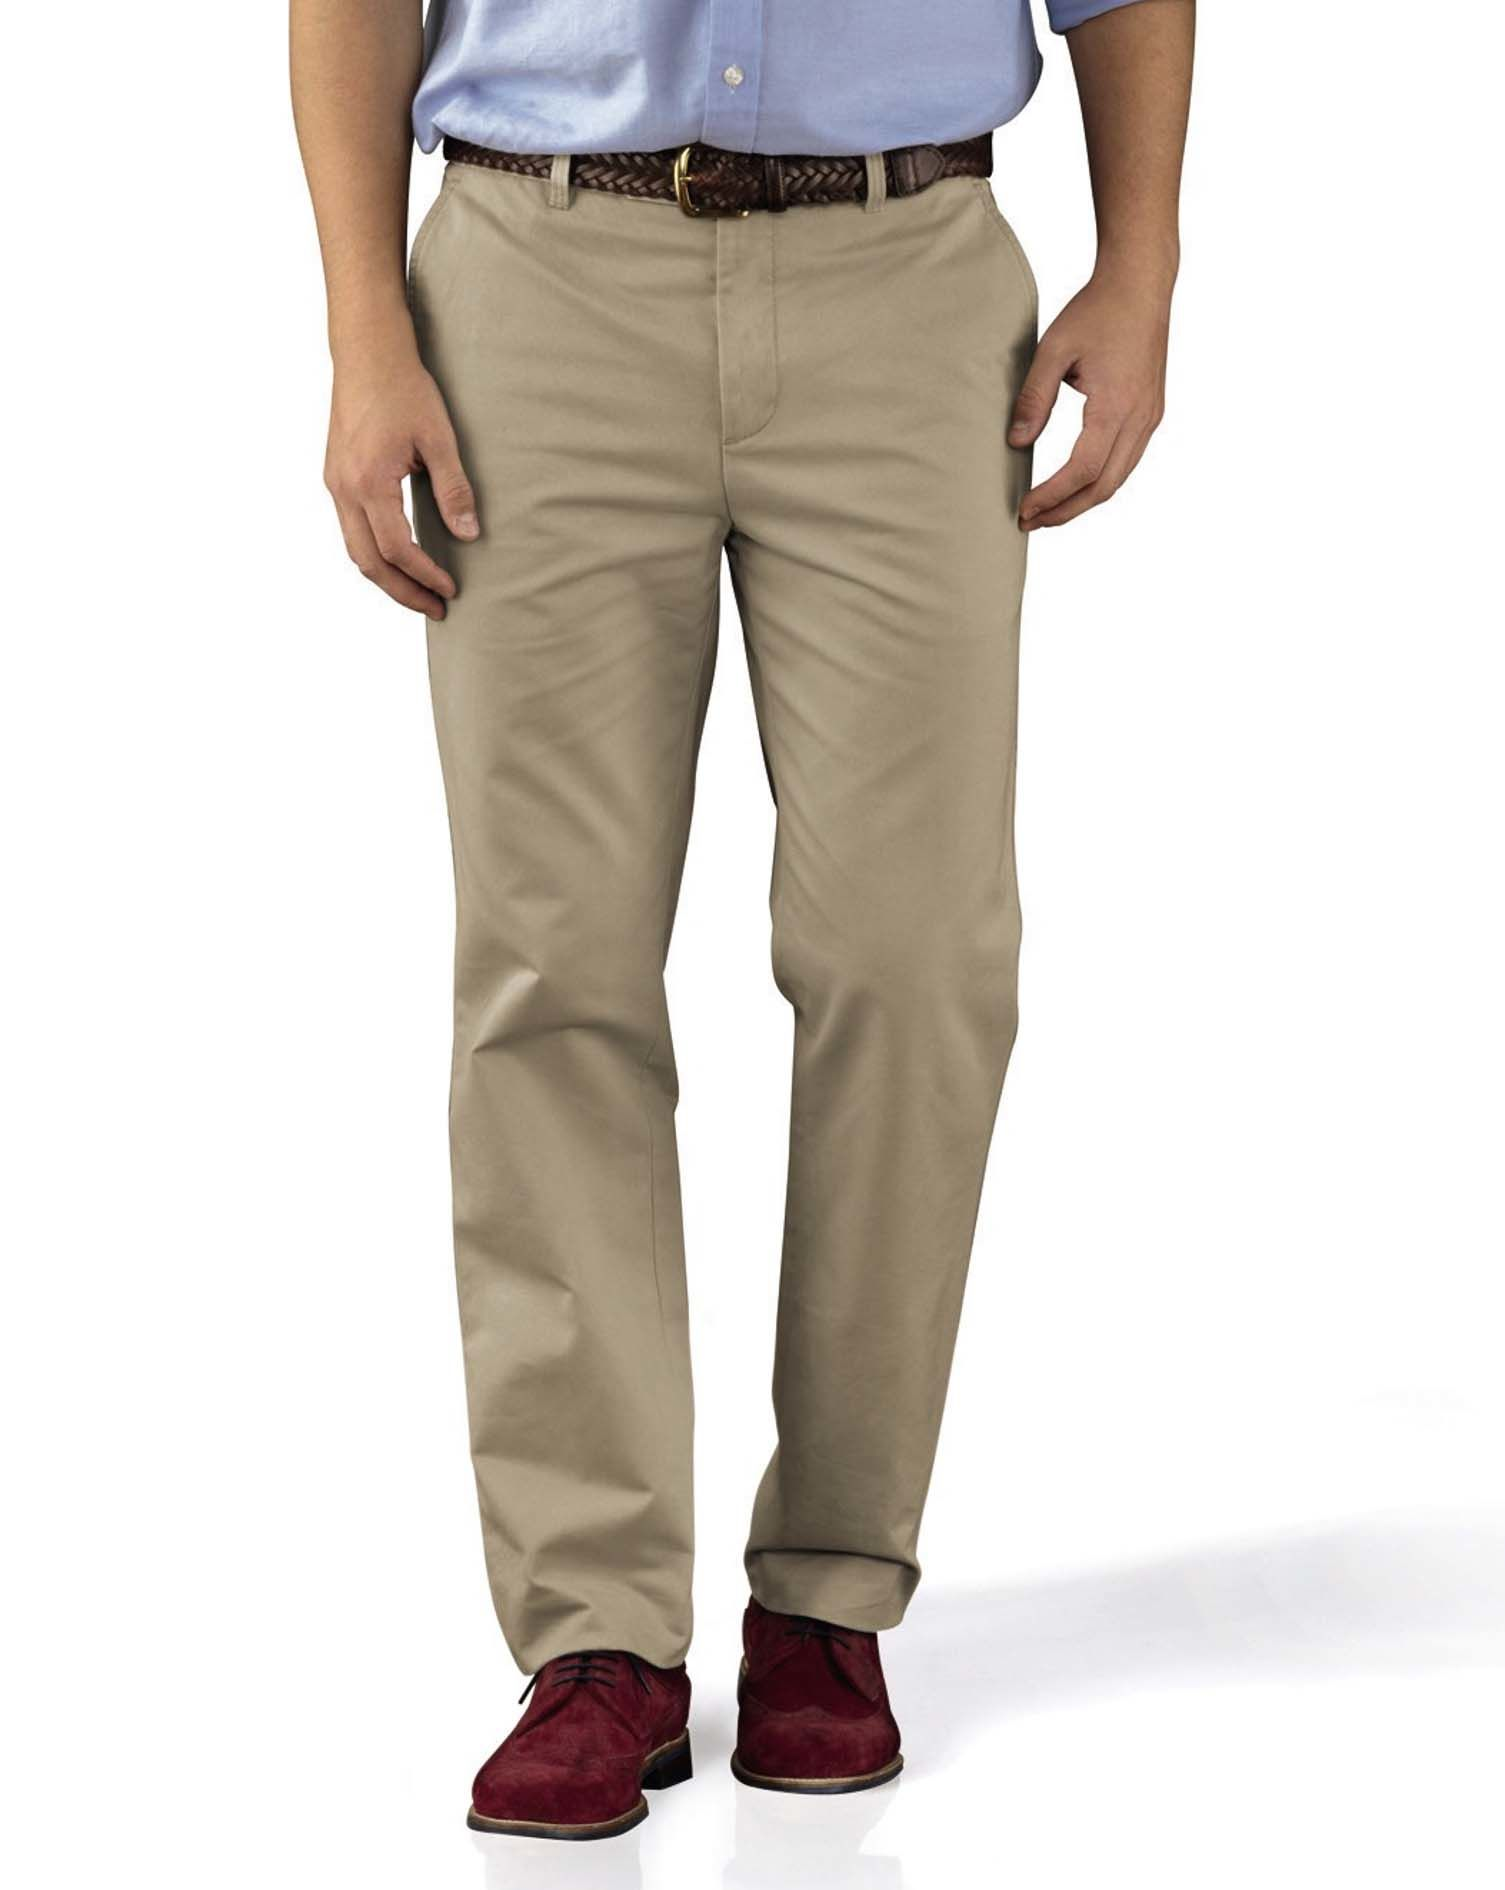 Get stylish and attractive   Chinos for trendiest fashion